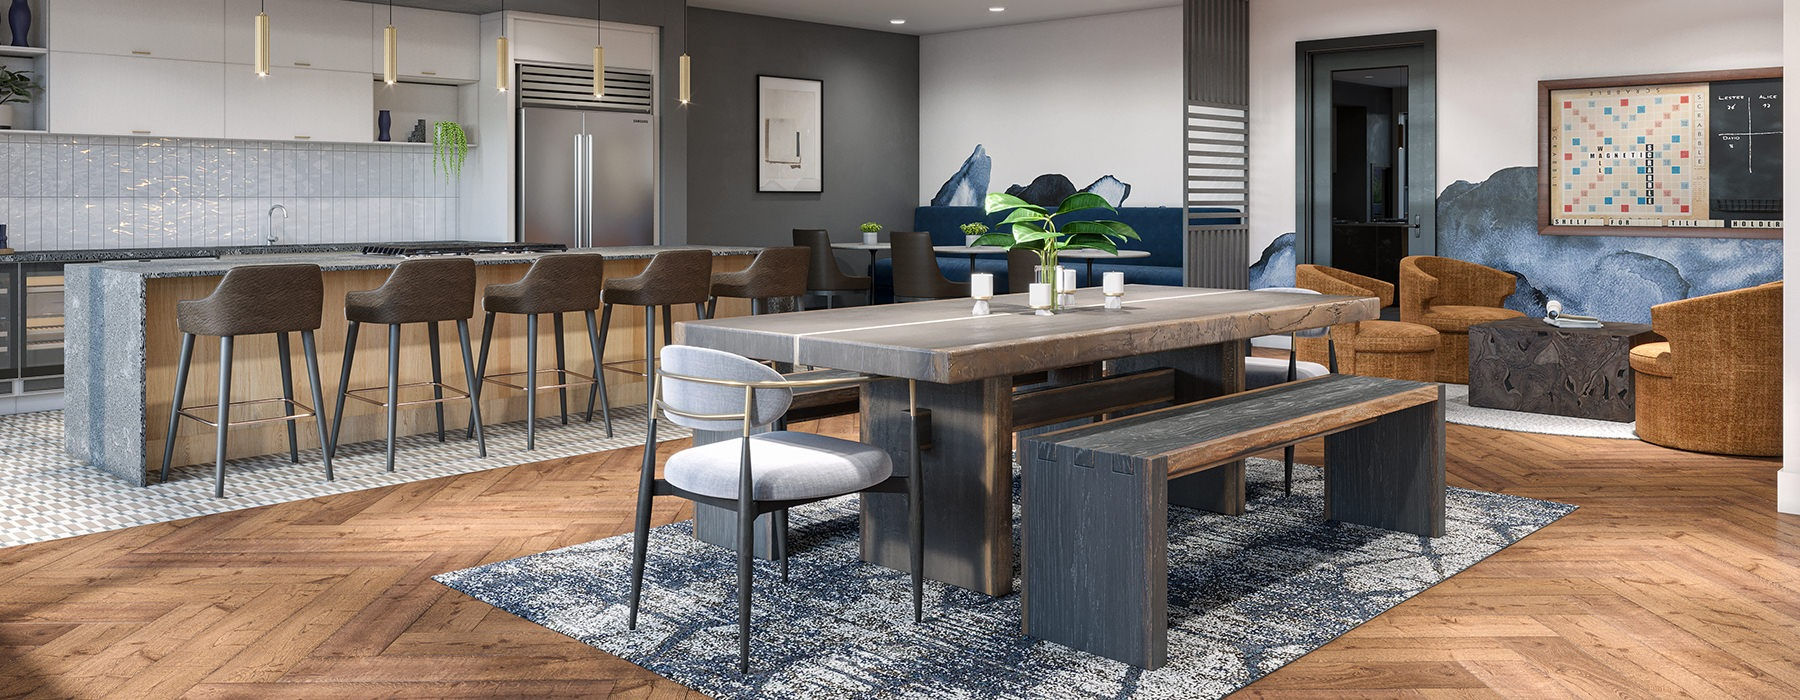 Large lounge area with multiple tables for seating and a full kitchen